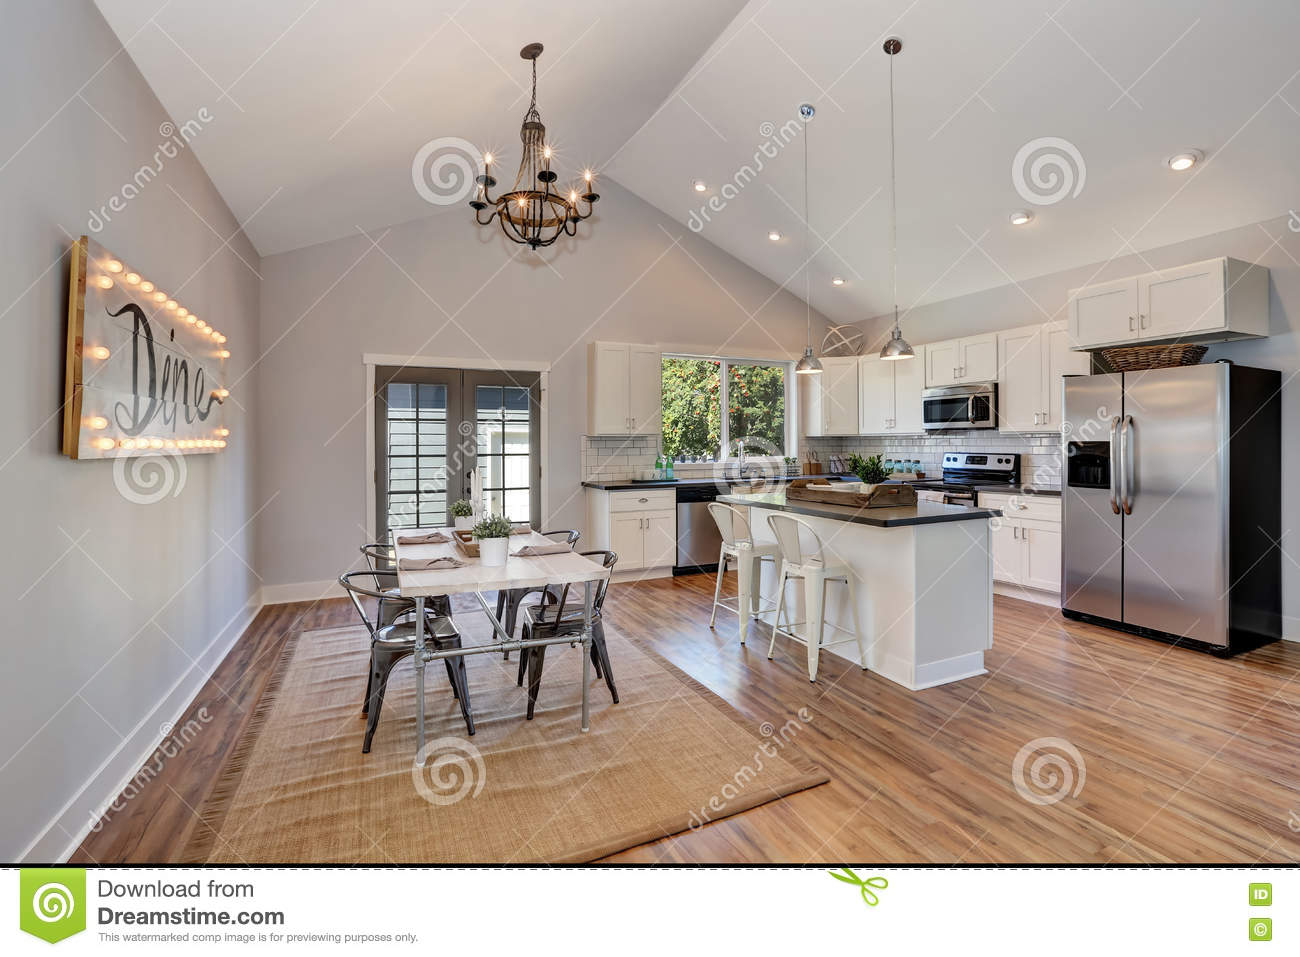 Kitchen With Vaulted Ceilings Interior Of Kitchen Room With High Vaulted Ceiling Stock Photo